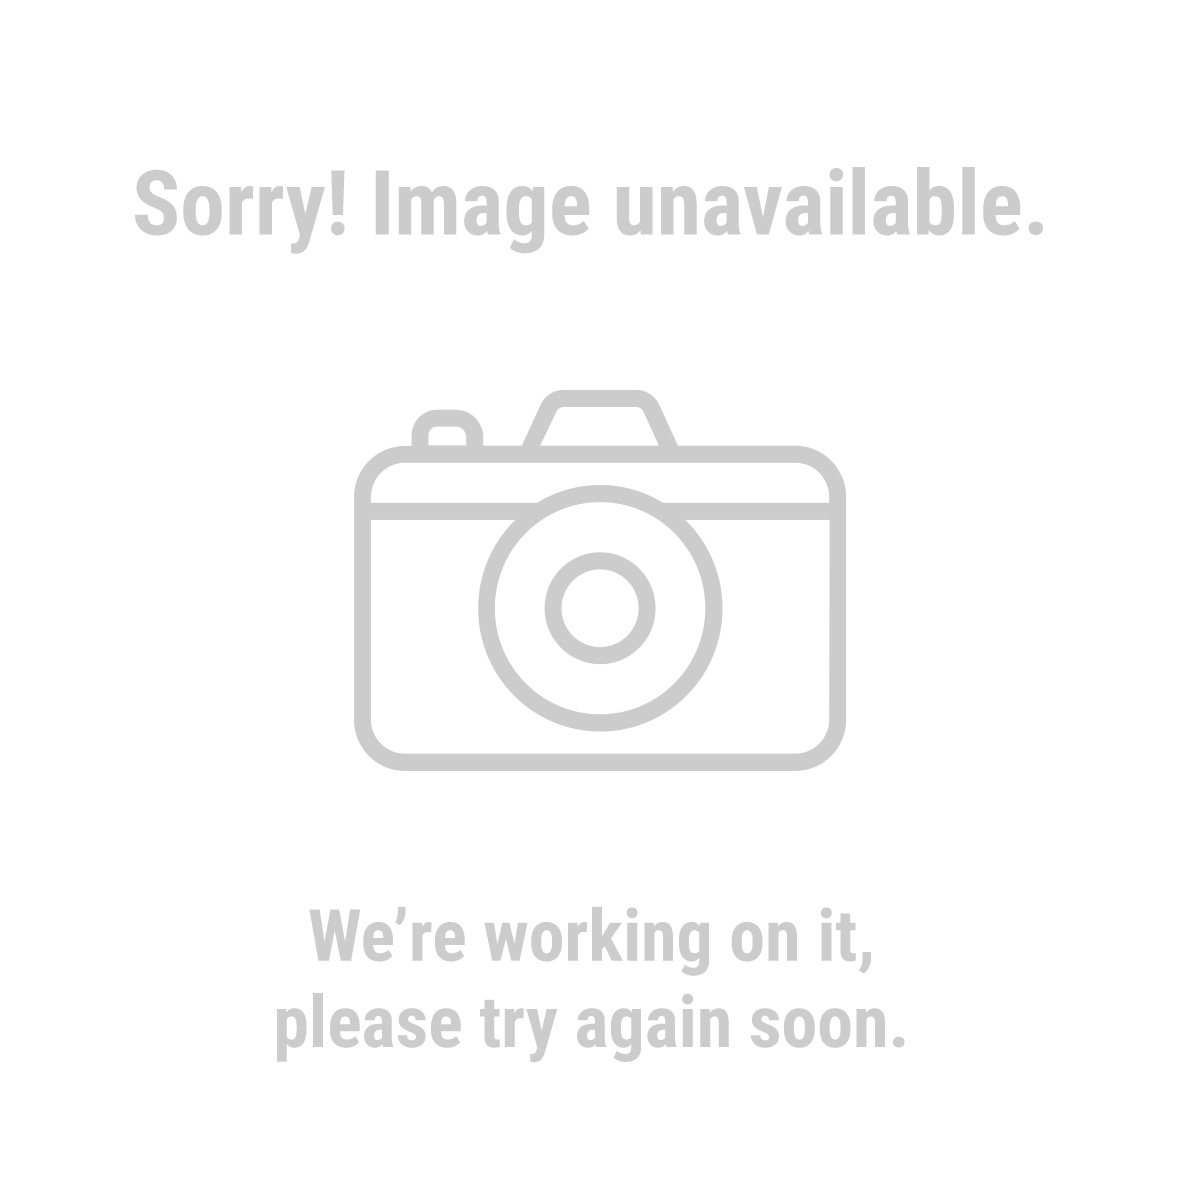 Western Safety Gloves 69455 Split Leather Work Gloves